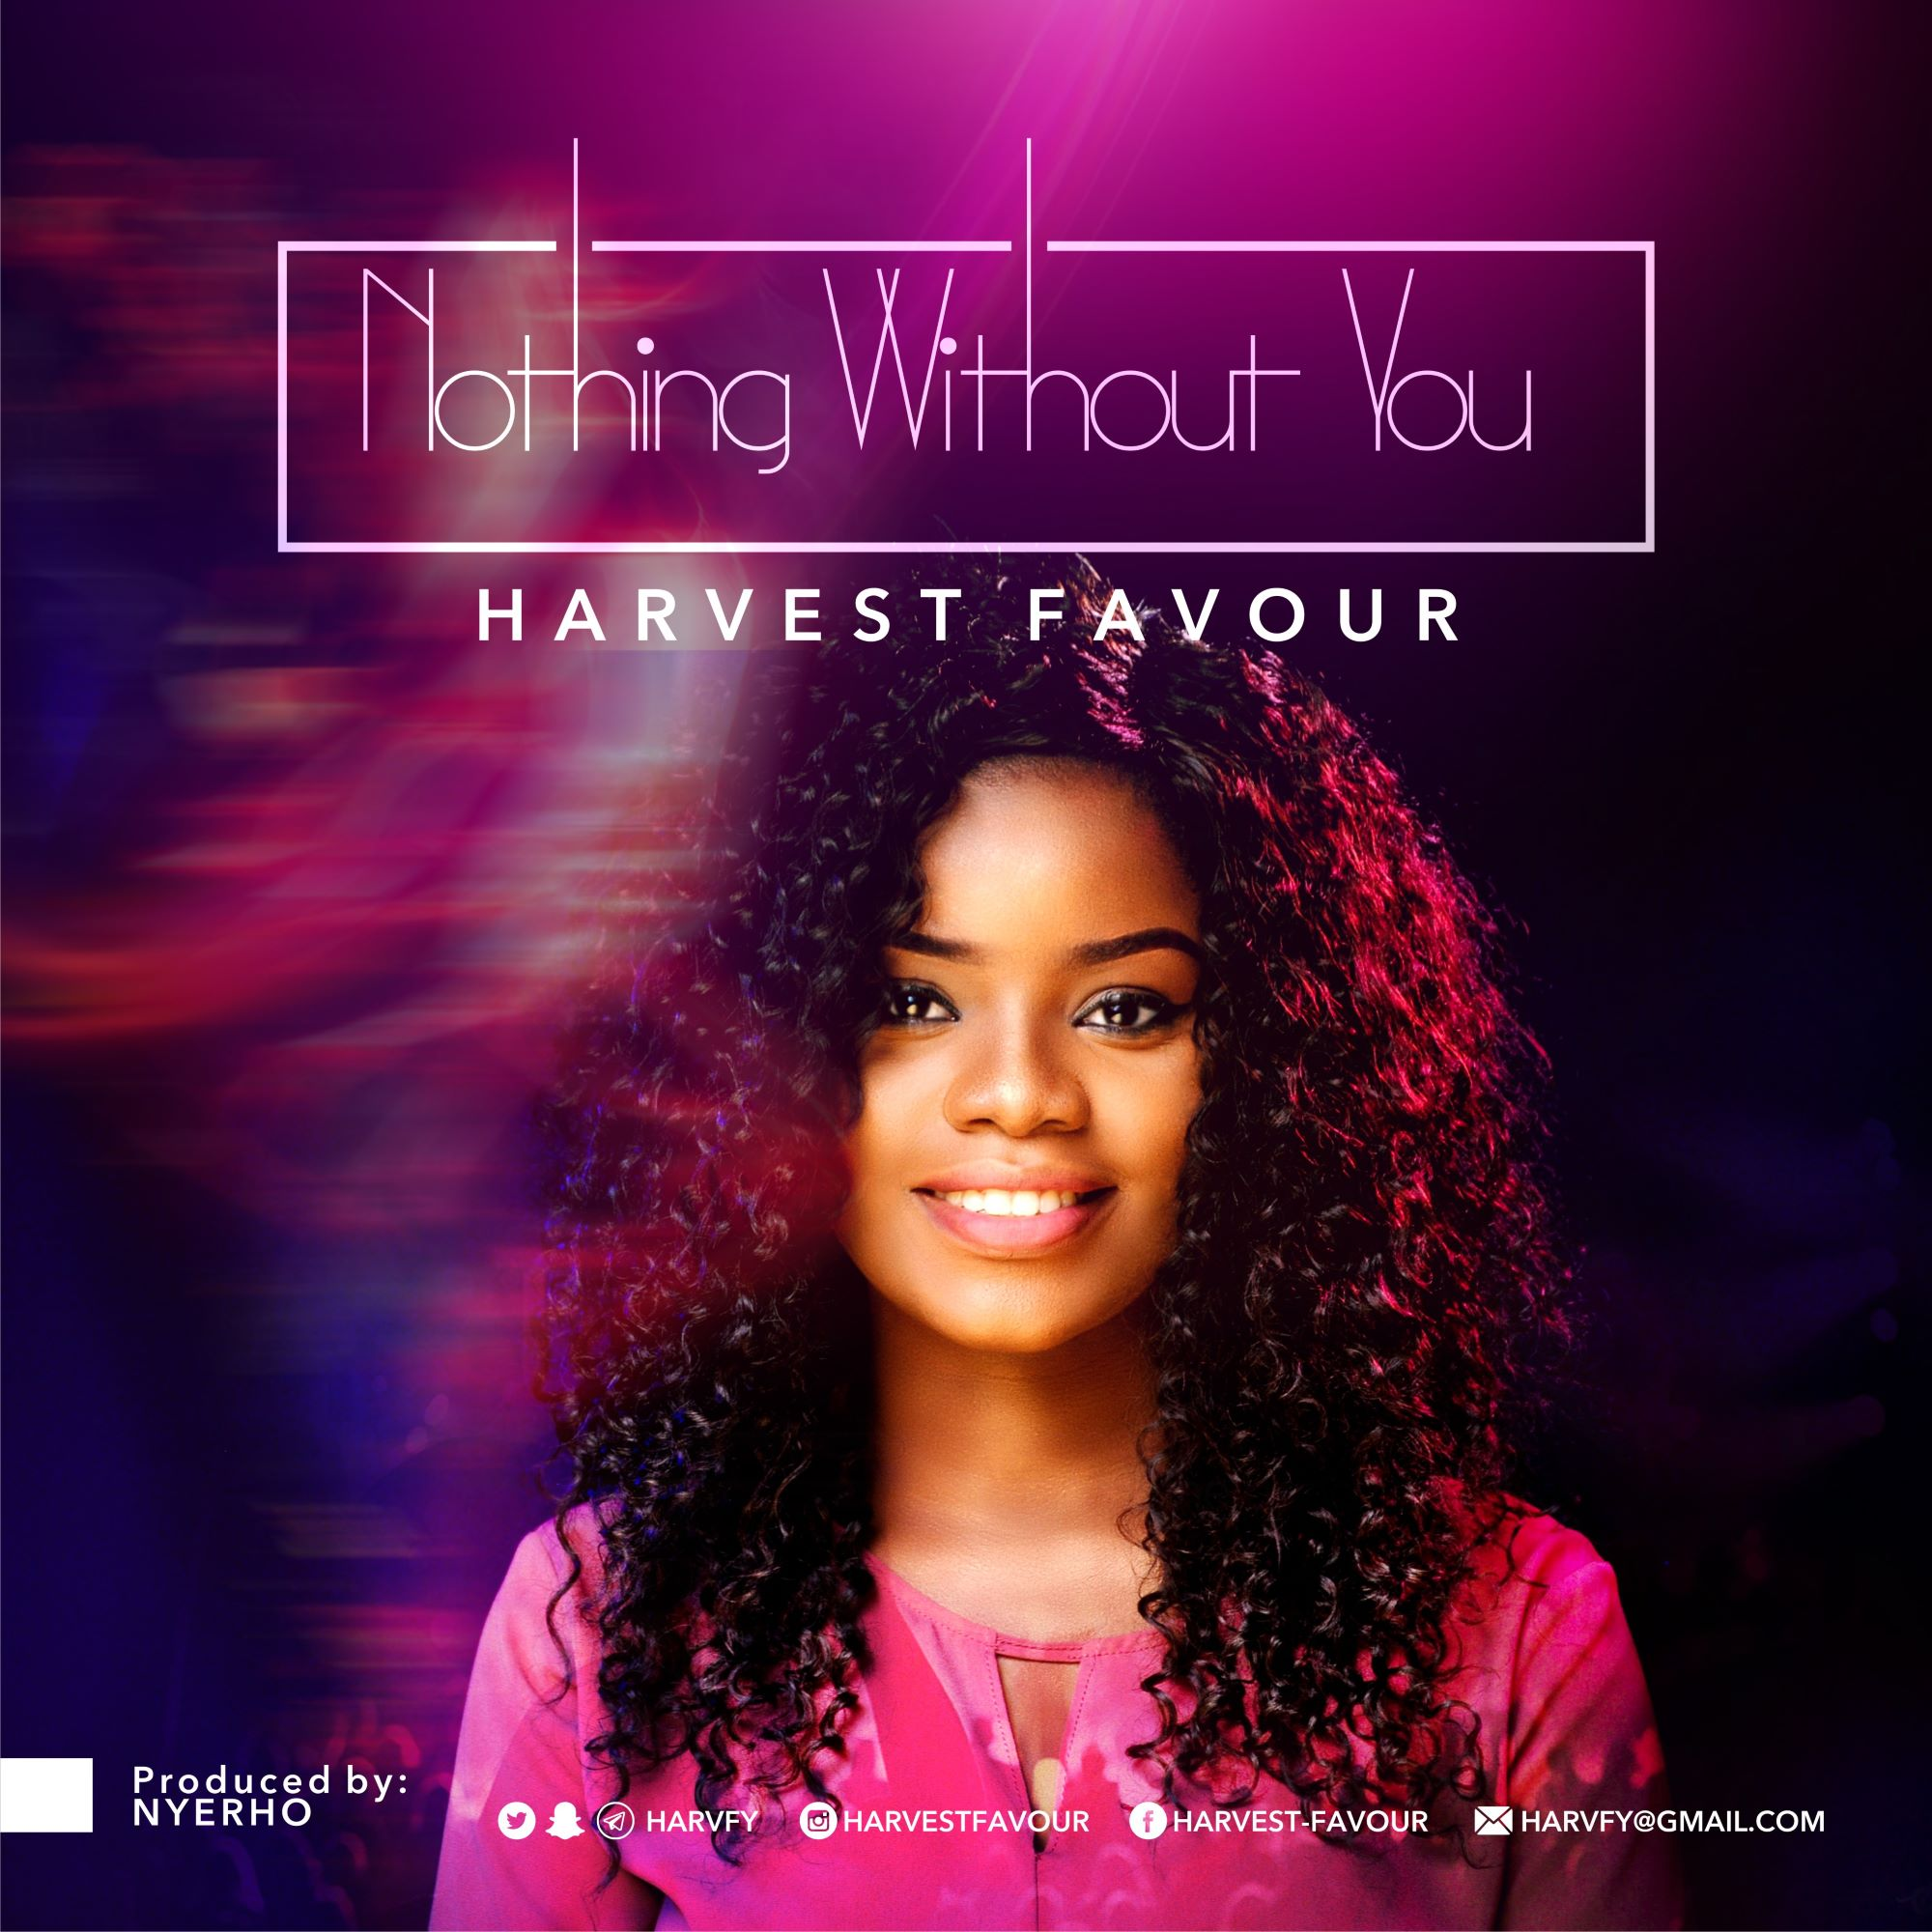 Harvest Favour Nothing Without You